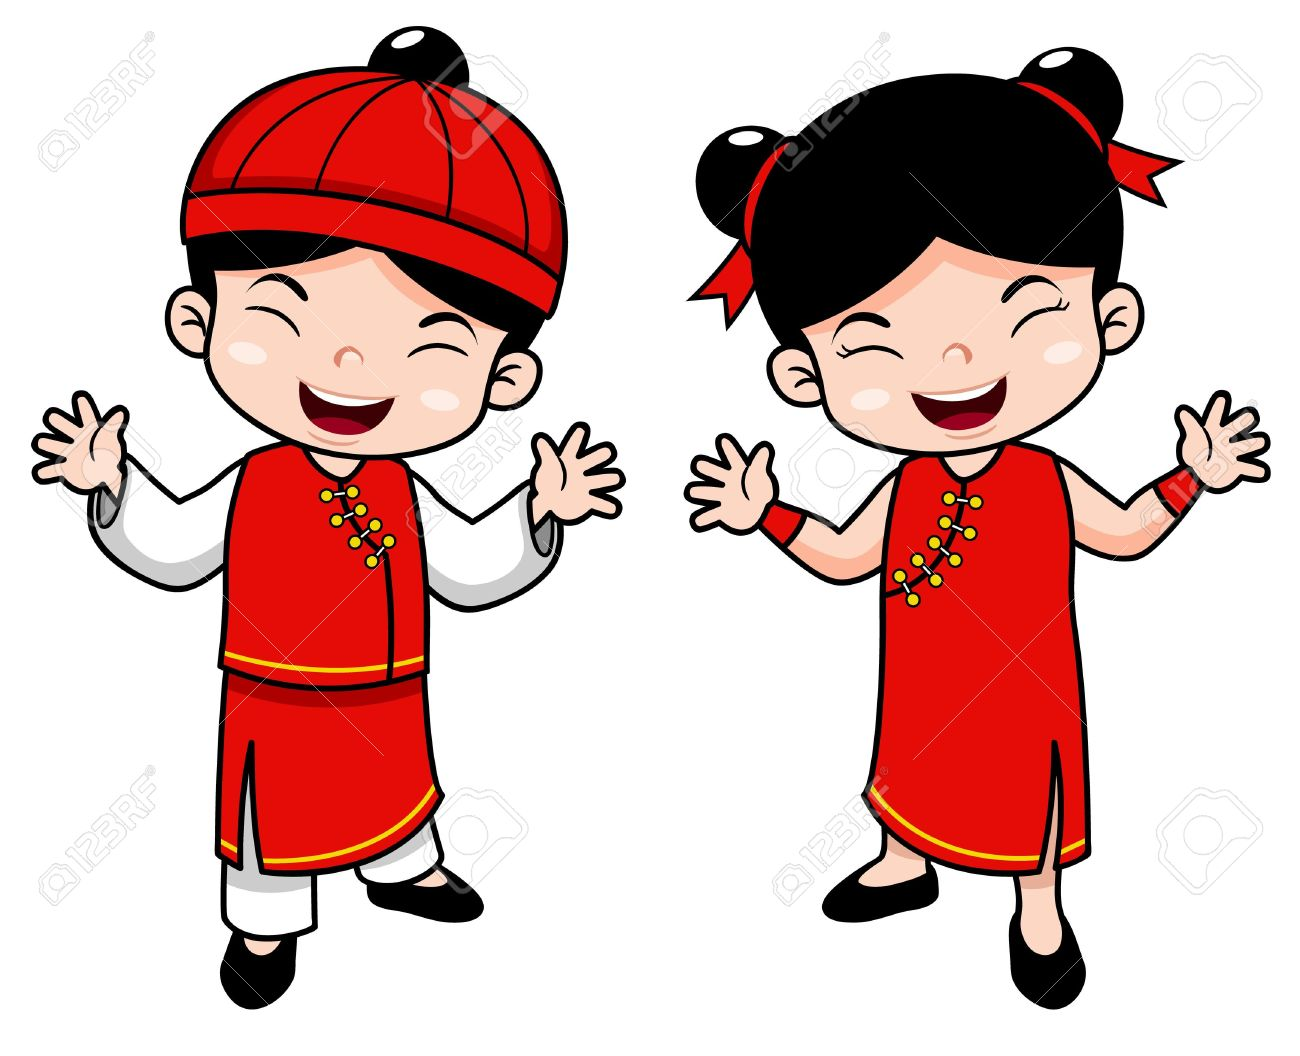 chinese characters clipart at getdrawings com free for personal rh getdrawings com chinese clip art images chinese clipart free